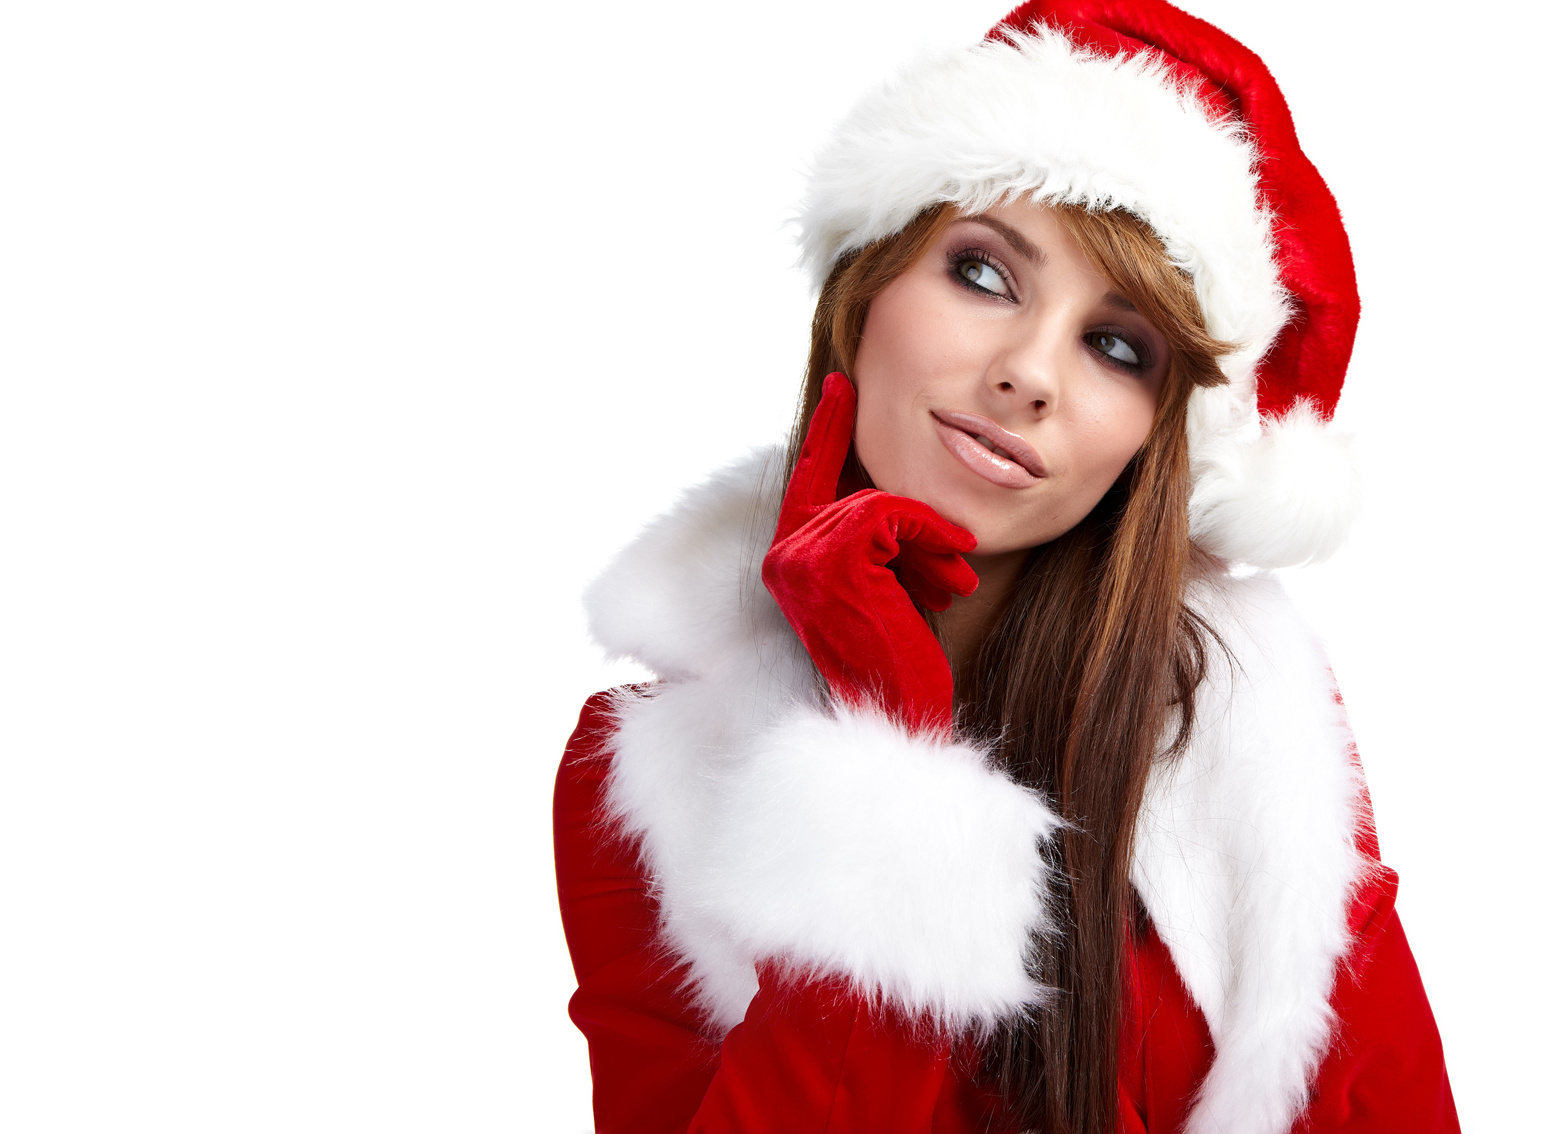 Santa Girl Could Someone Cut This Please Stock